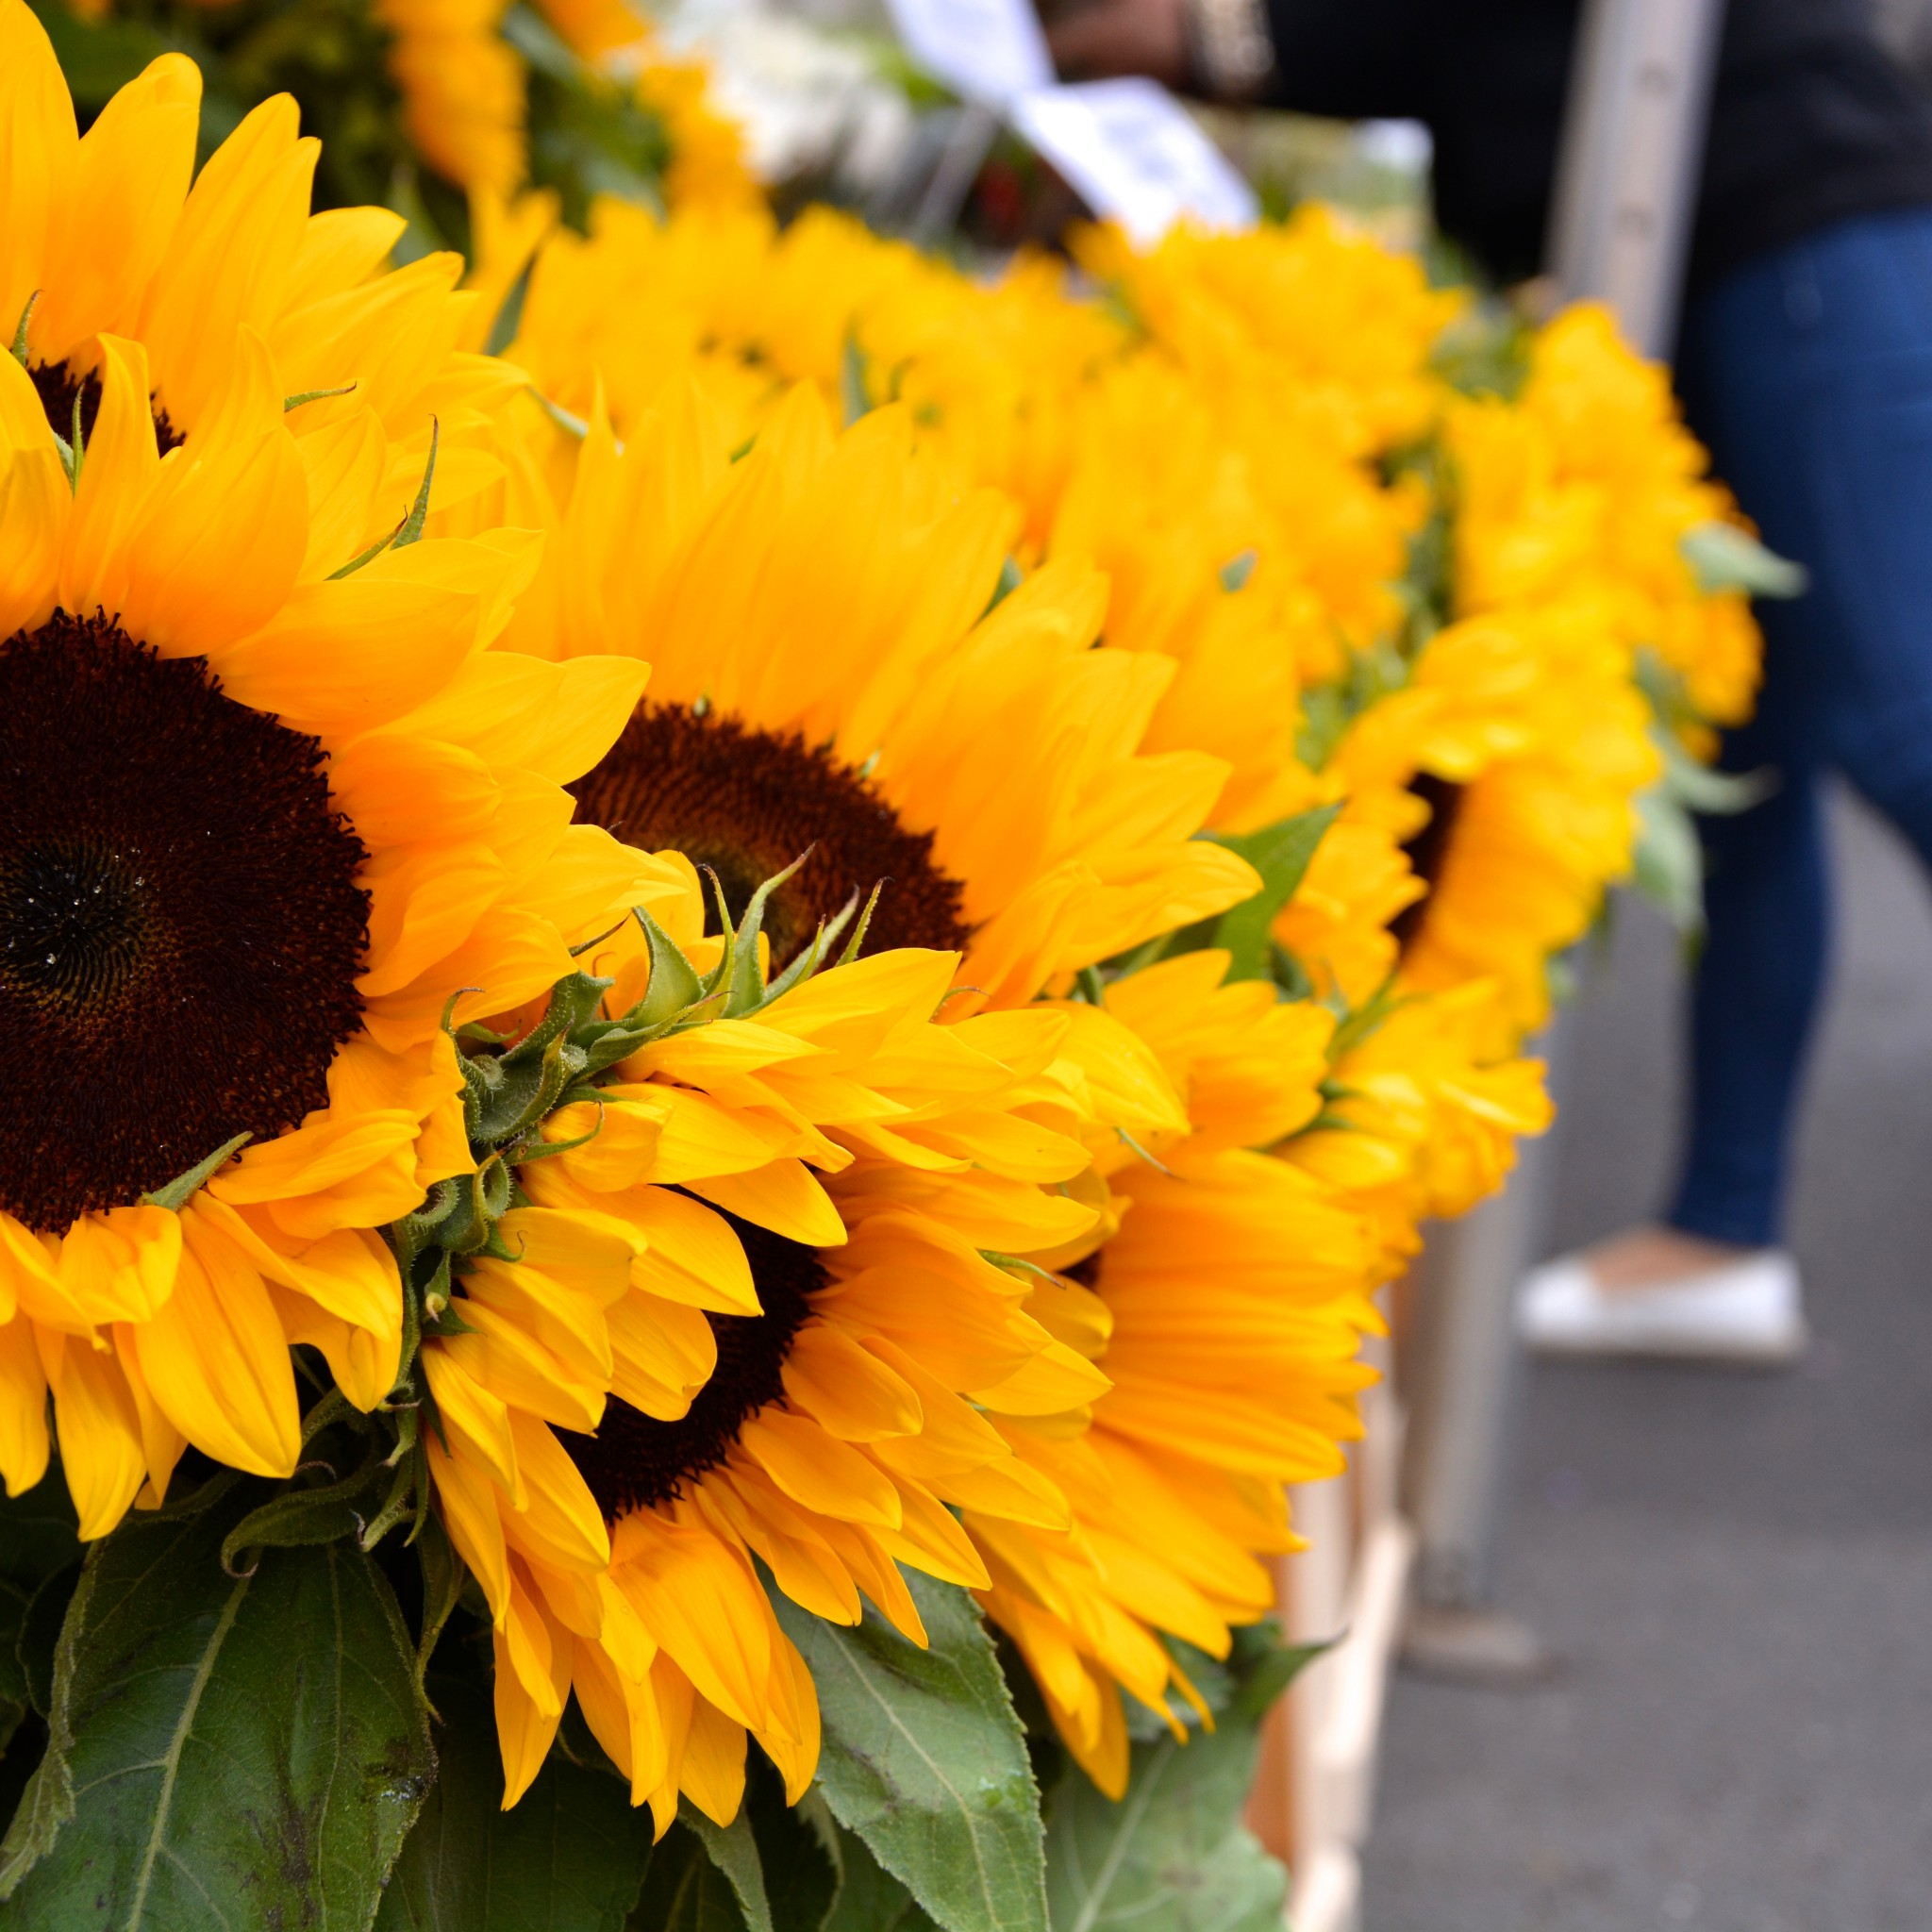 Sunflowers at Columbia Road